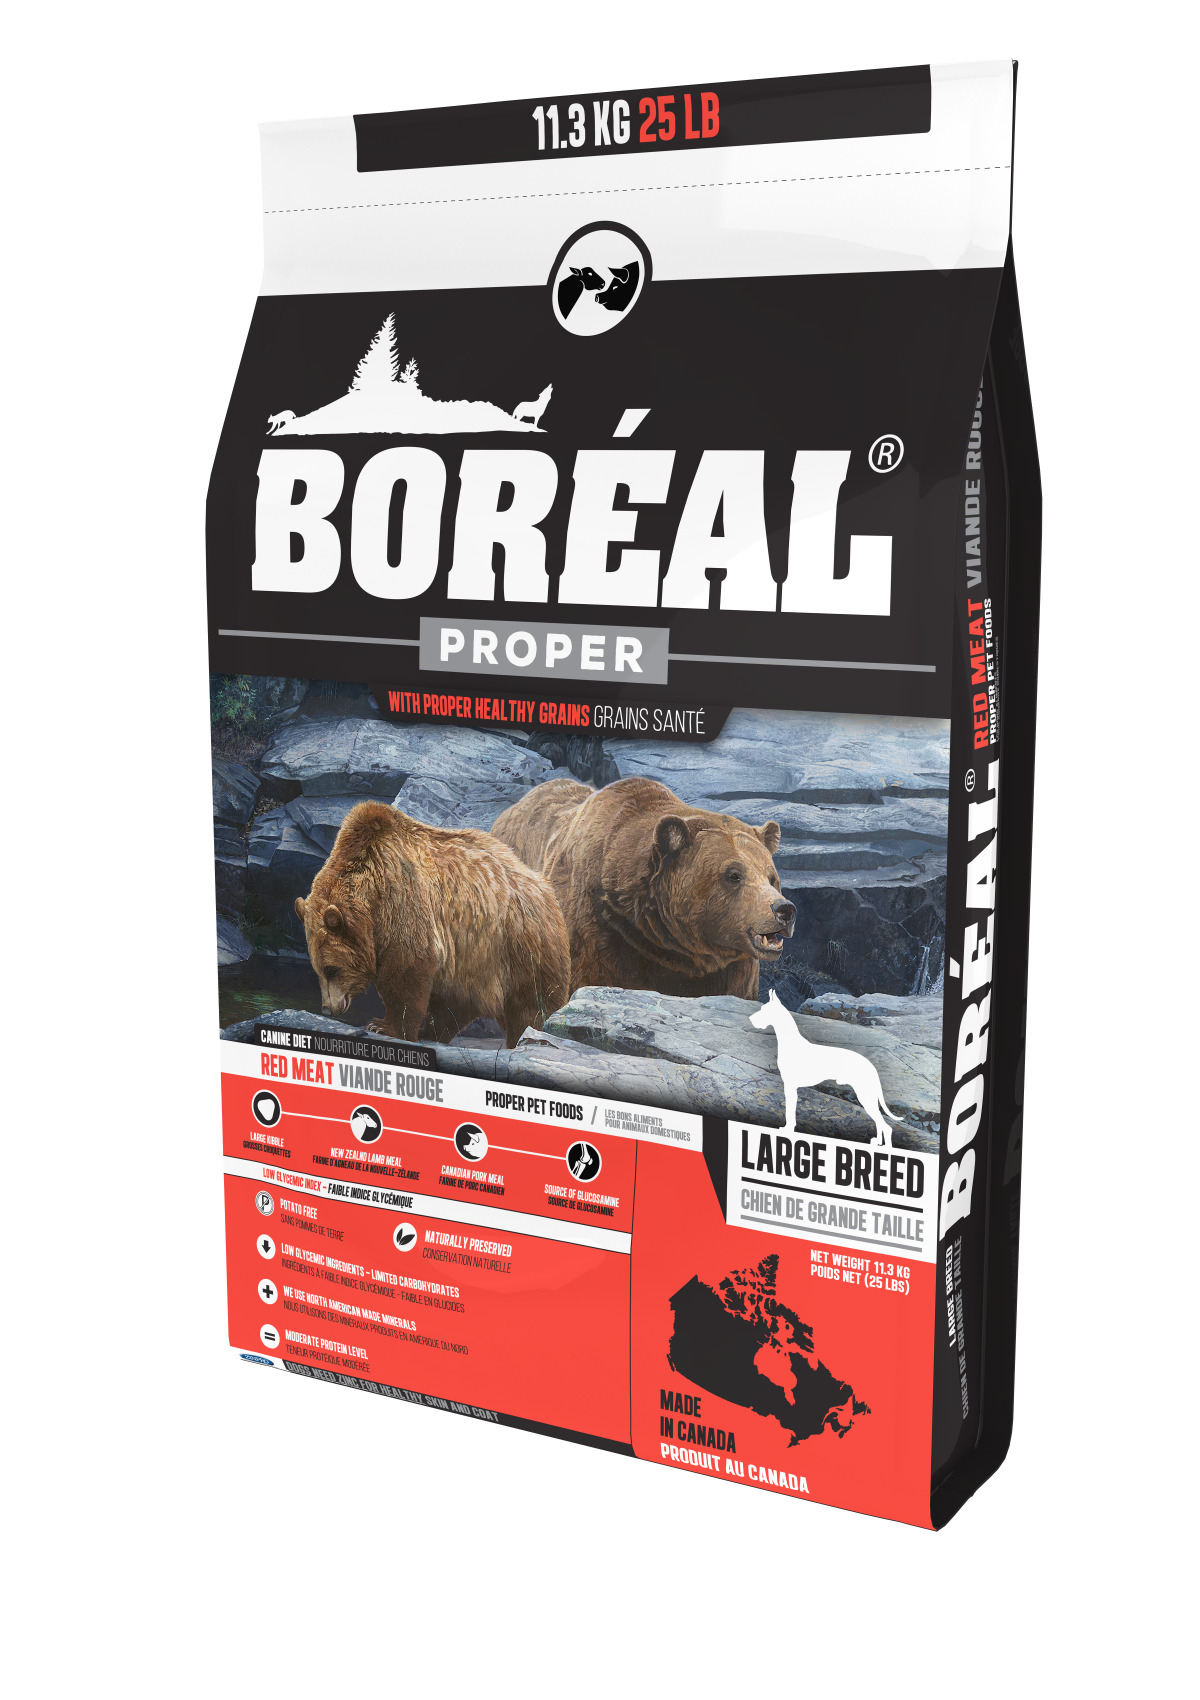 Proper Large Breed Red Meat - Low Carb Grains